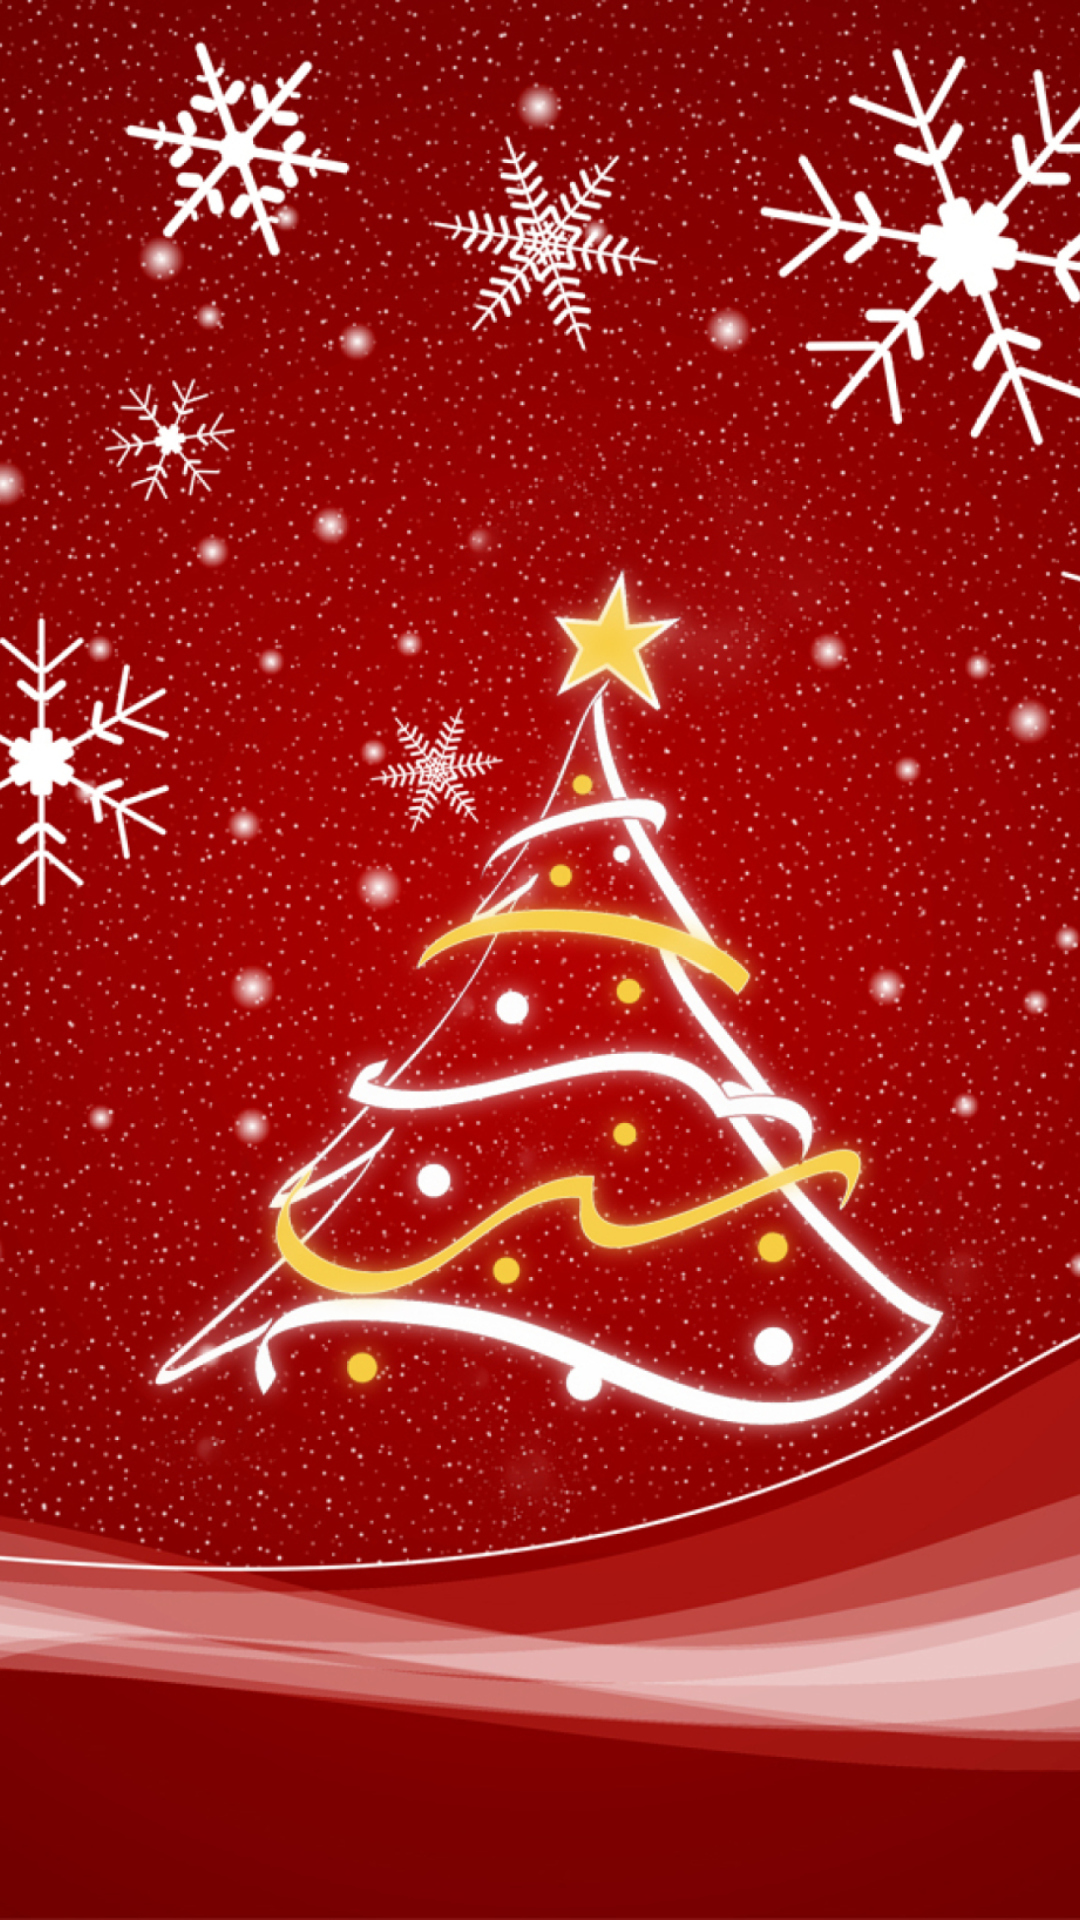 Christmas Tree wallpaper 1080x1920